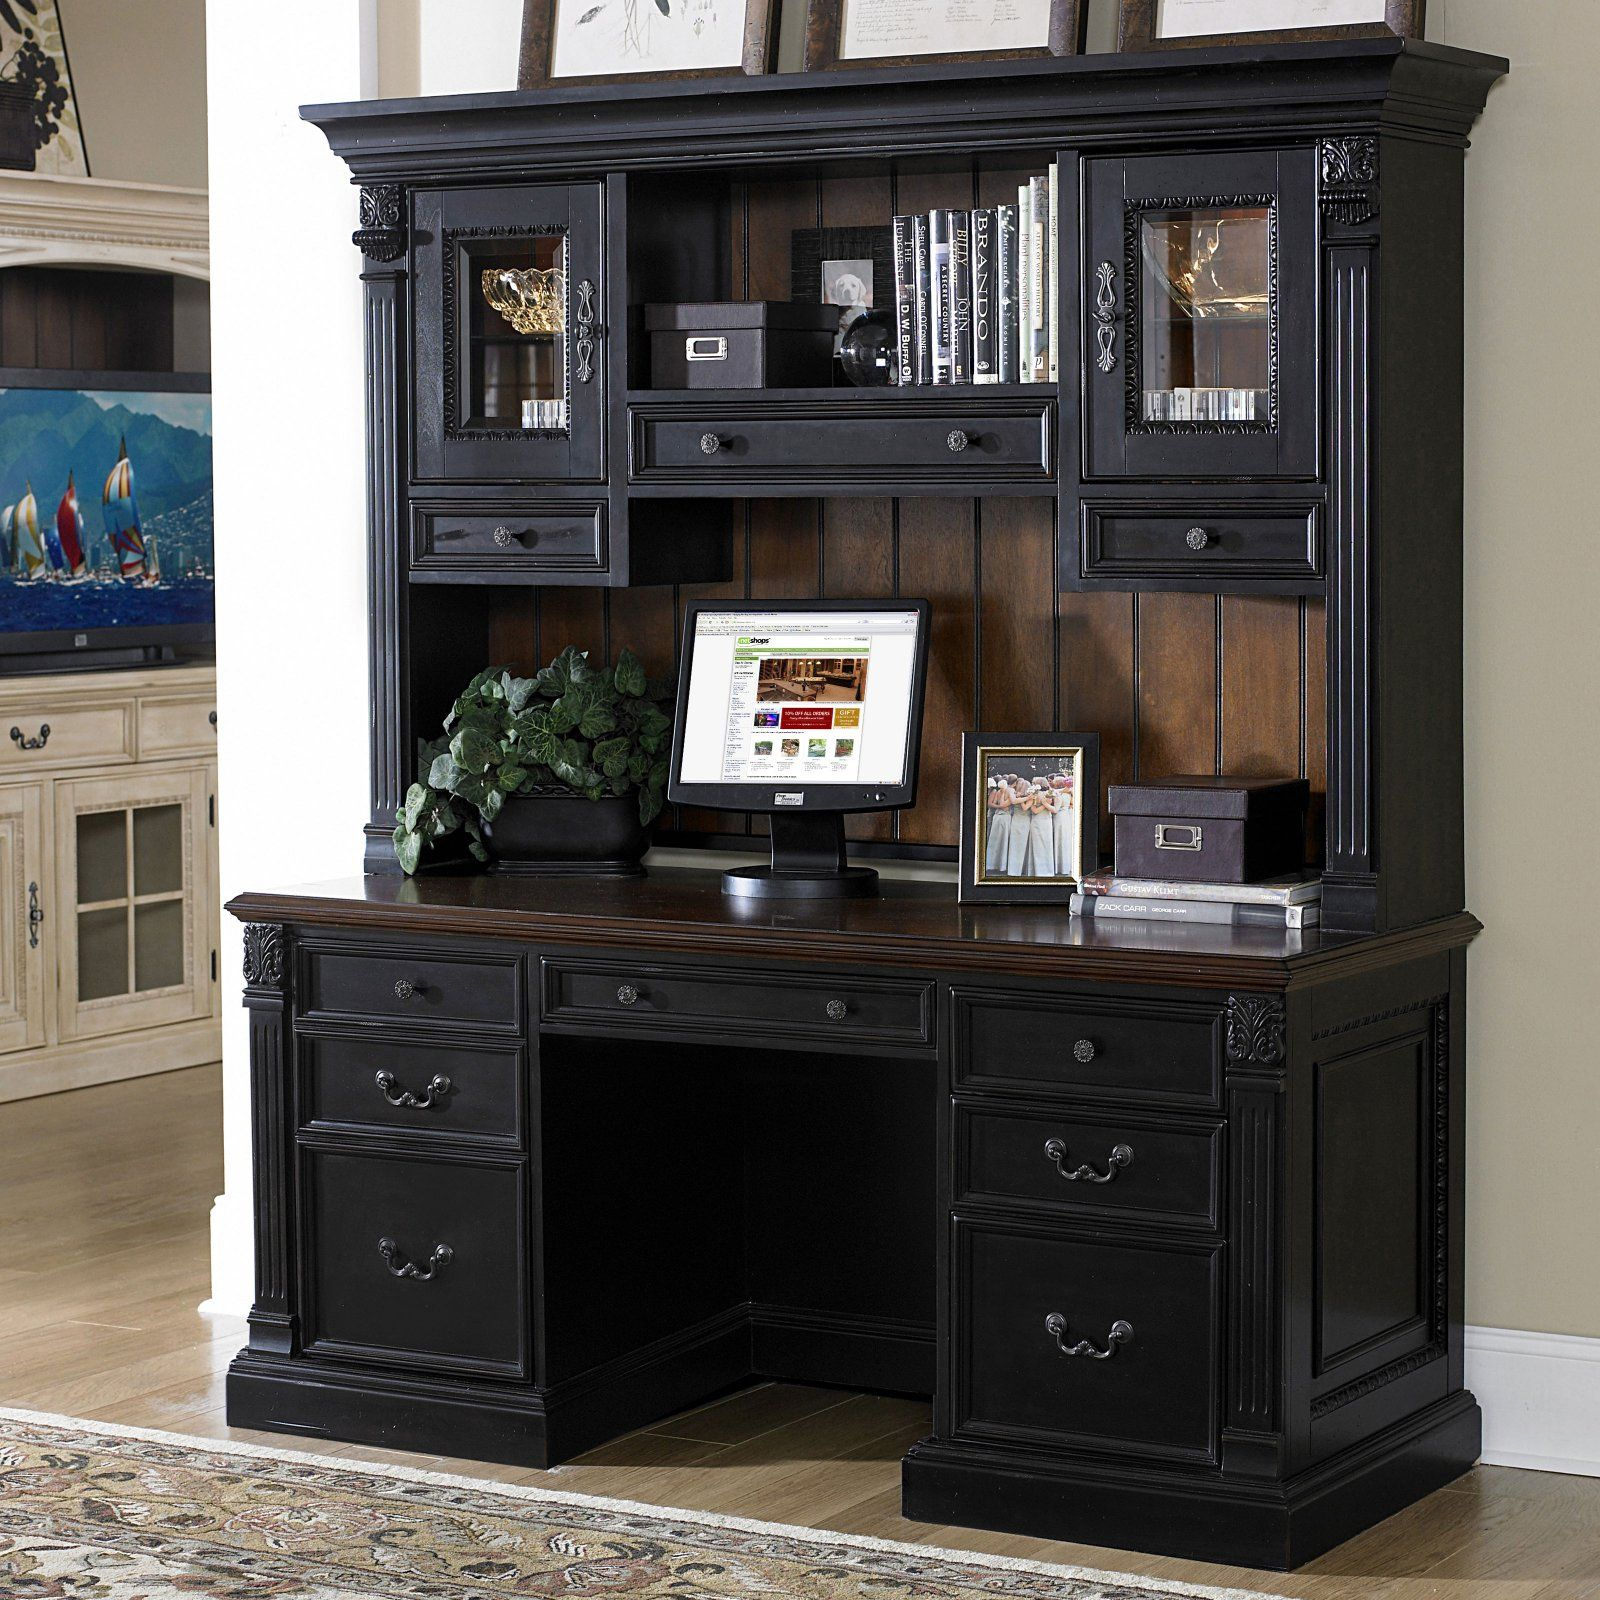 Charming Sauder Computer Desk With Hutch Black Pics Idea